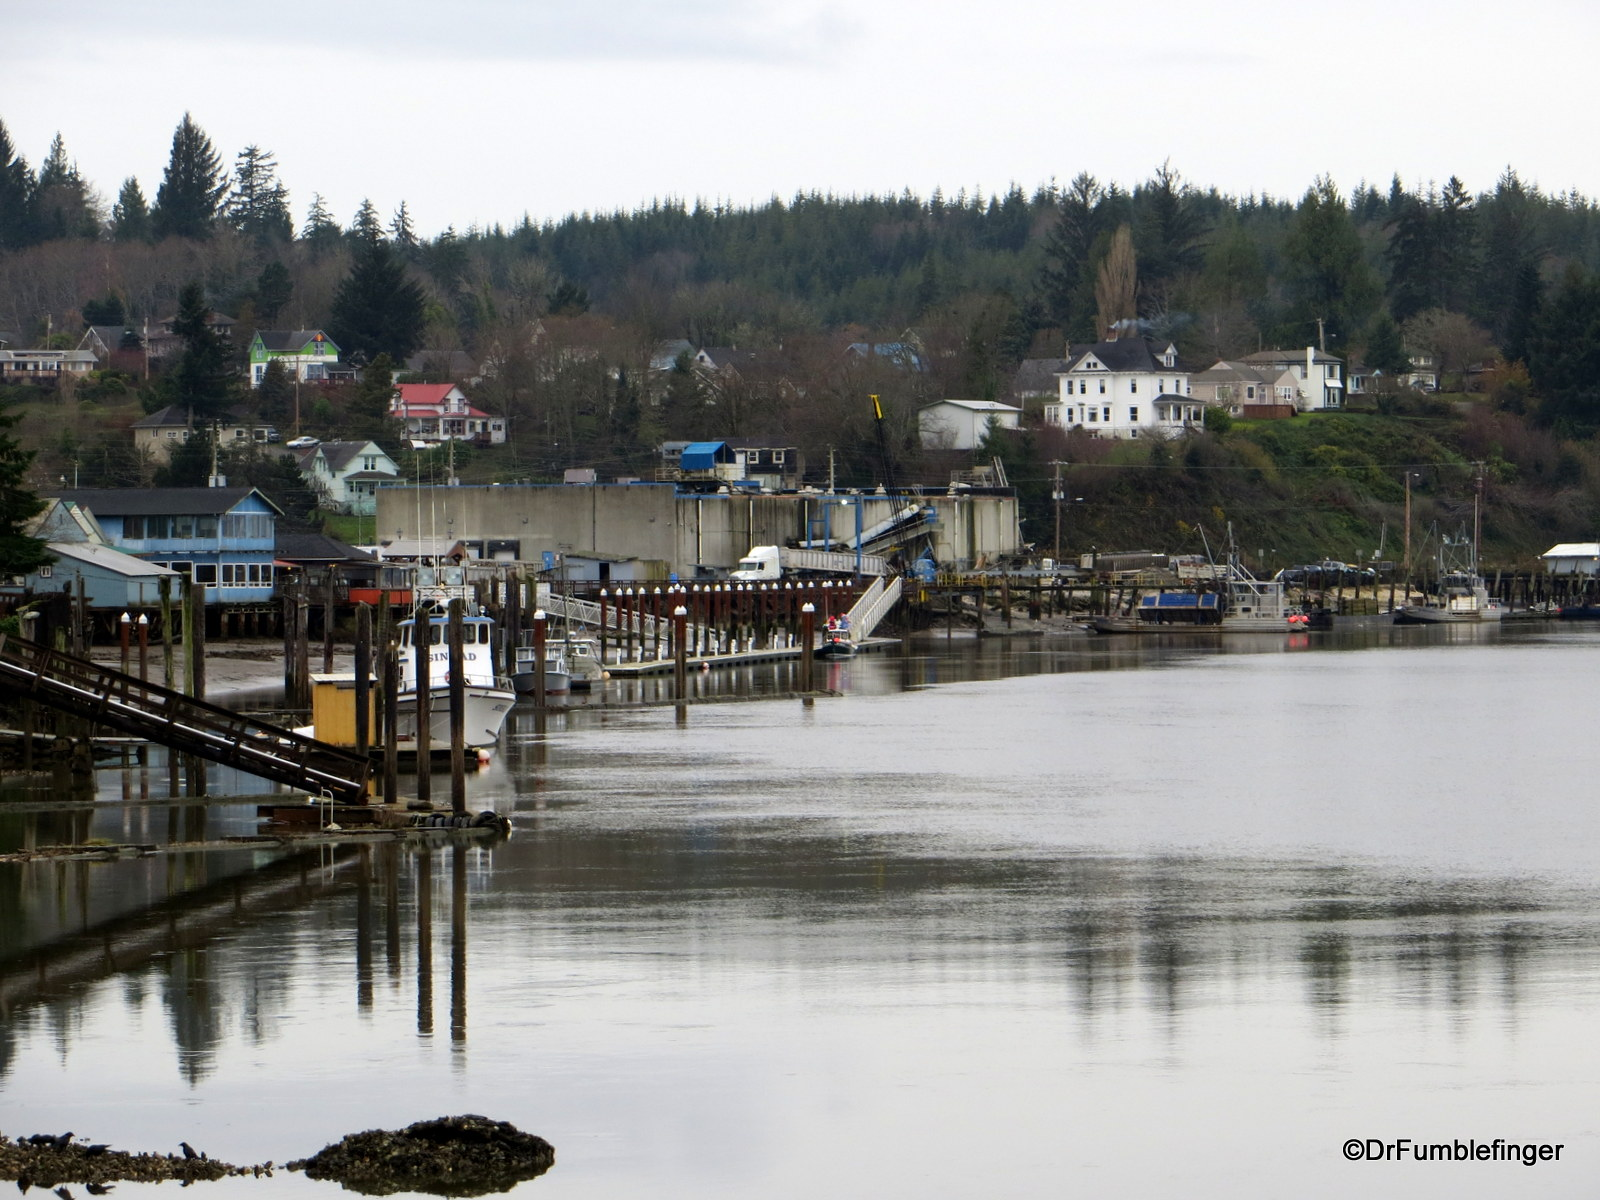 Small town on Willapa River